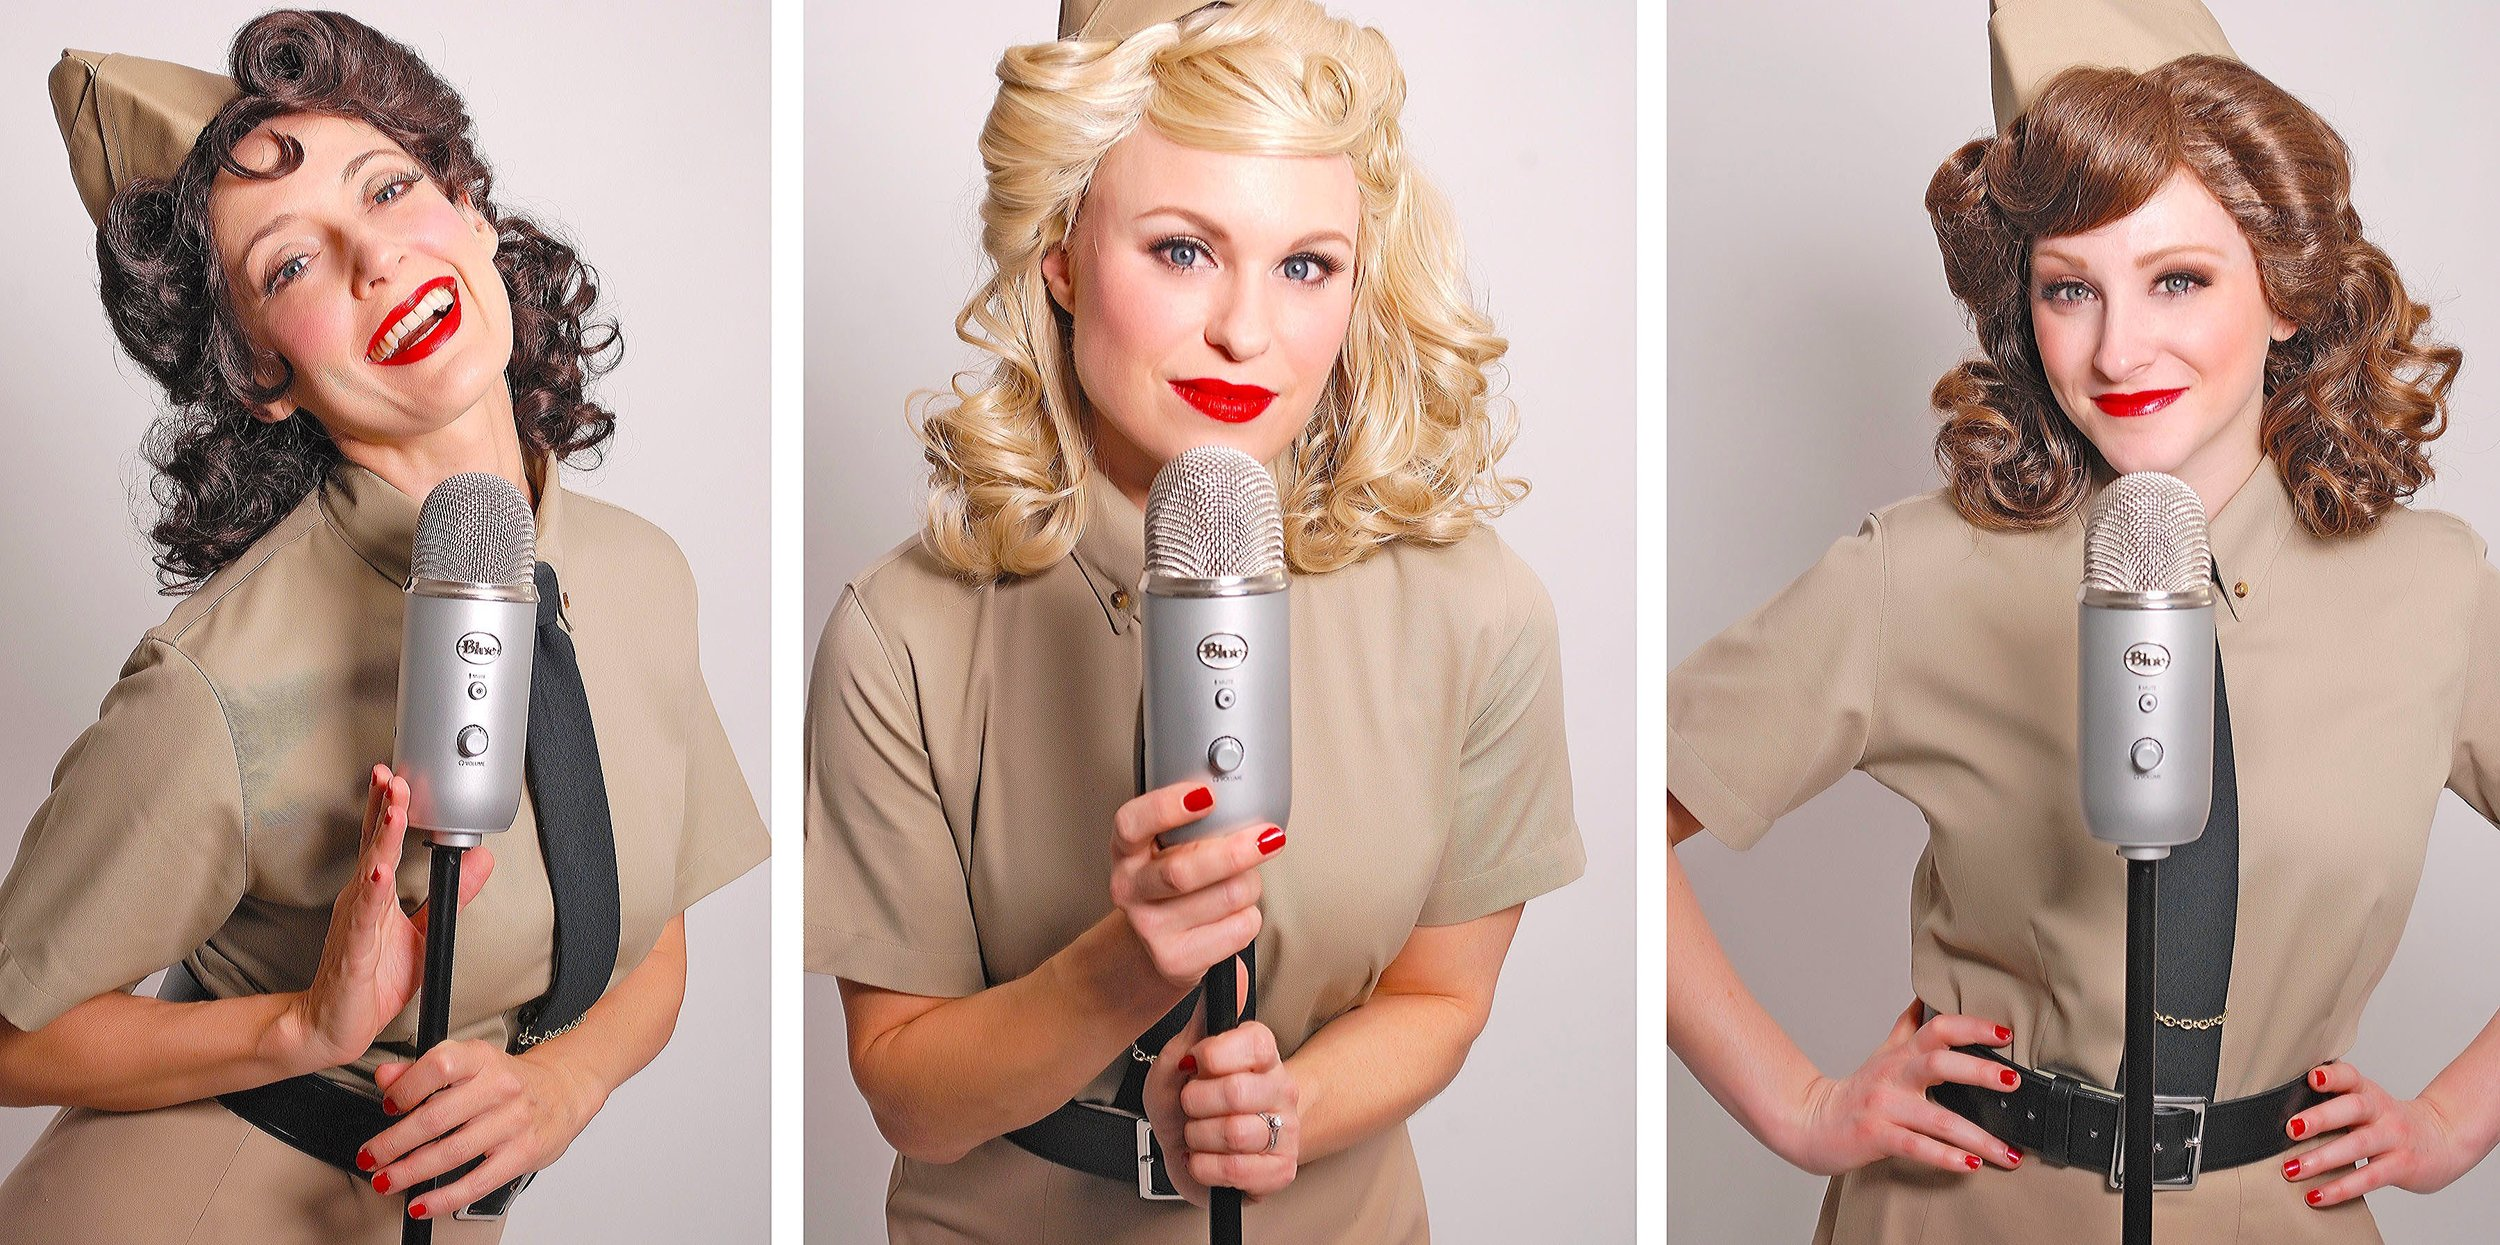 The Swing Dolls as The Andrews Sisters